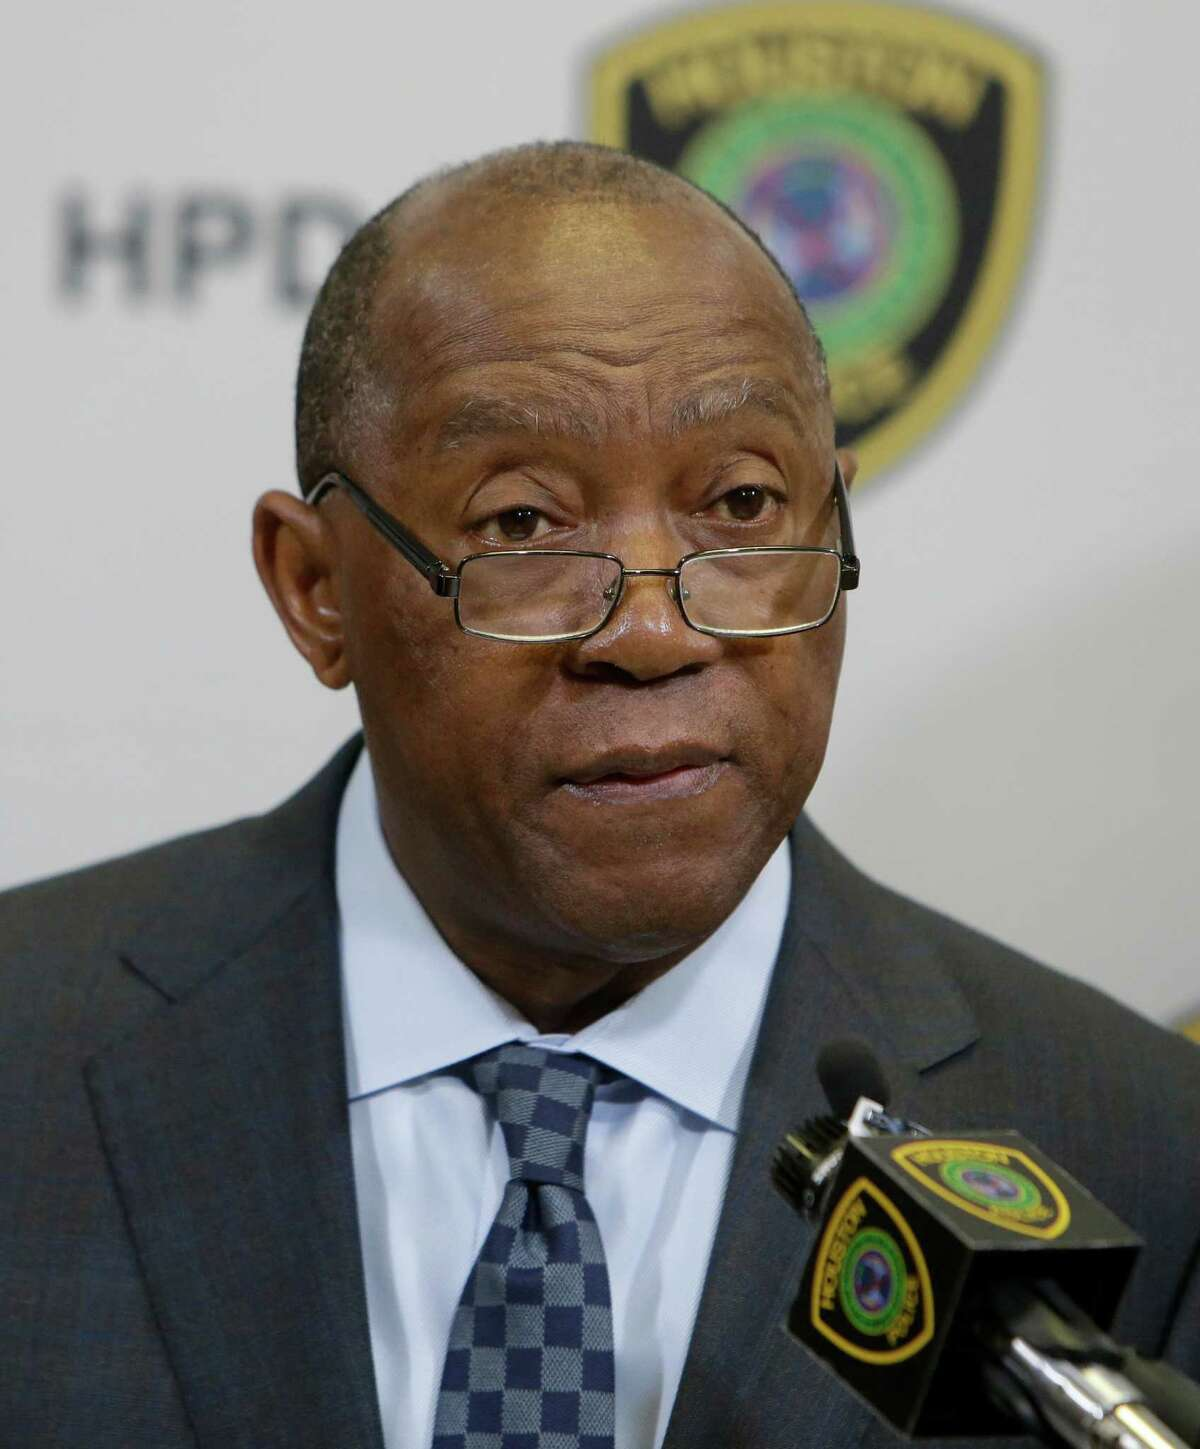 Houston Mayor Sylvester Turner speaks to the media about an investigation into the large-scale distribution of synthetic cannabinoids commonly known as kush in Houston at the Houston Police Dept. Edward A. Thomas Building, 1200 Travis, Thursday, Aug. 11, 2016, in Houston. ( Melissa Phillip / Houston Chronicle )